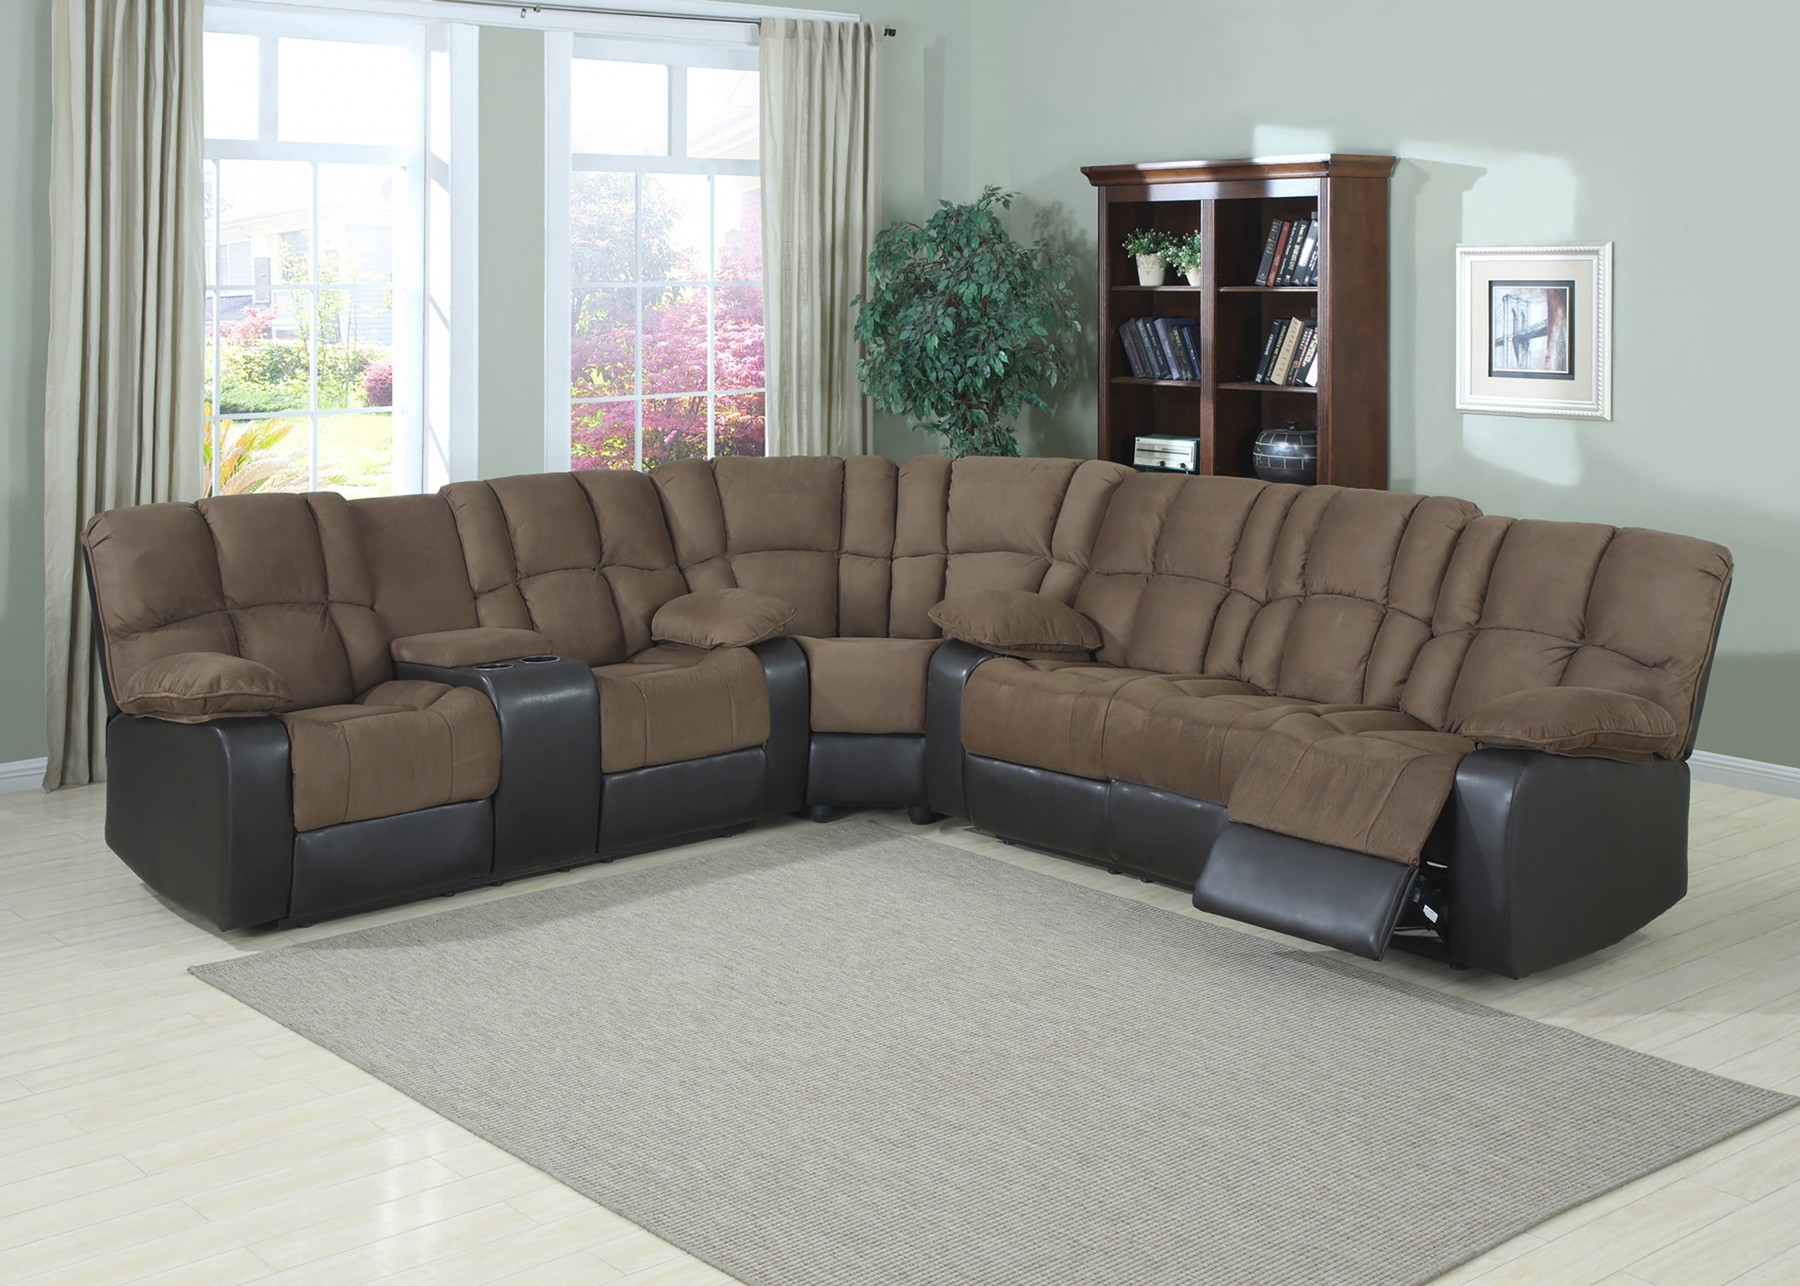 12 Best Collection Of Extra Wide Sectional Sofas